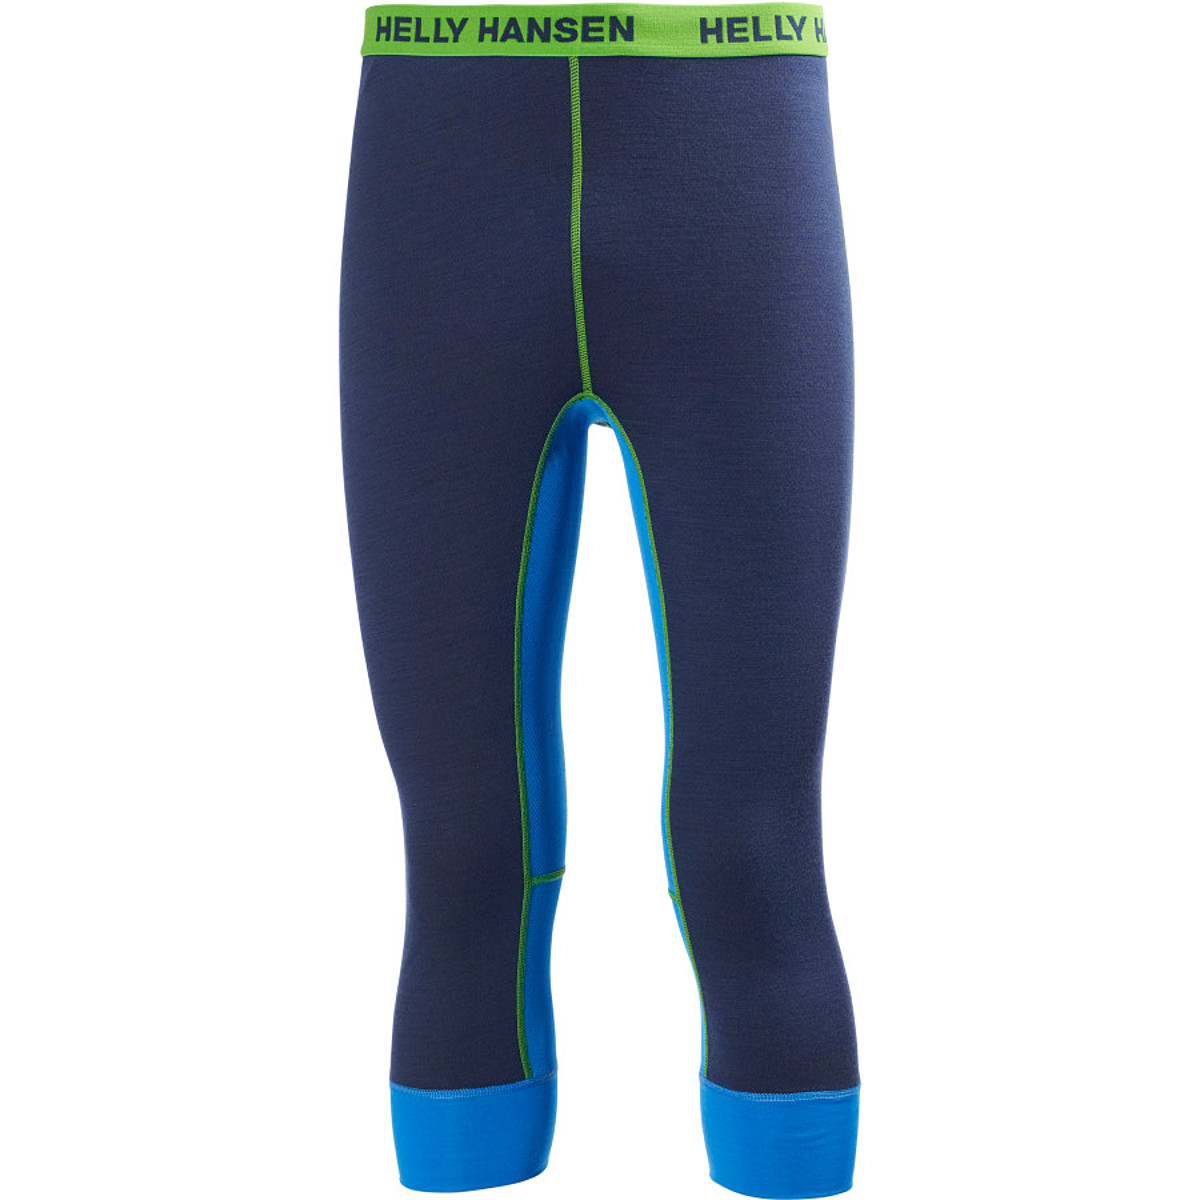 photo: Helly Hansen Men's HH Warm Odin Hybrid 3/4 Pant base layer bottom